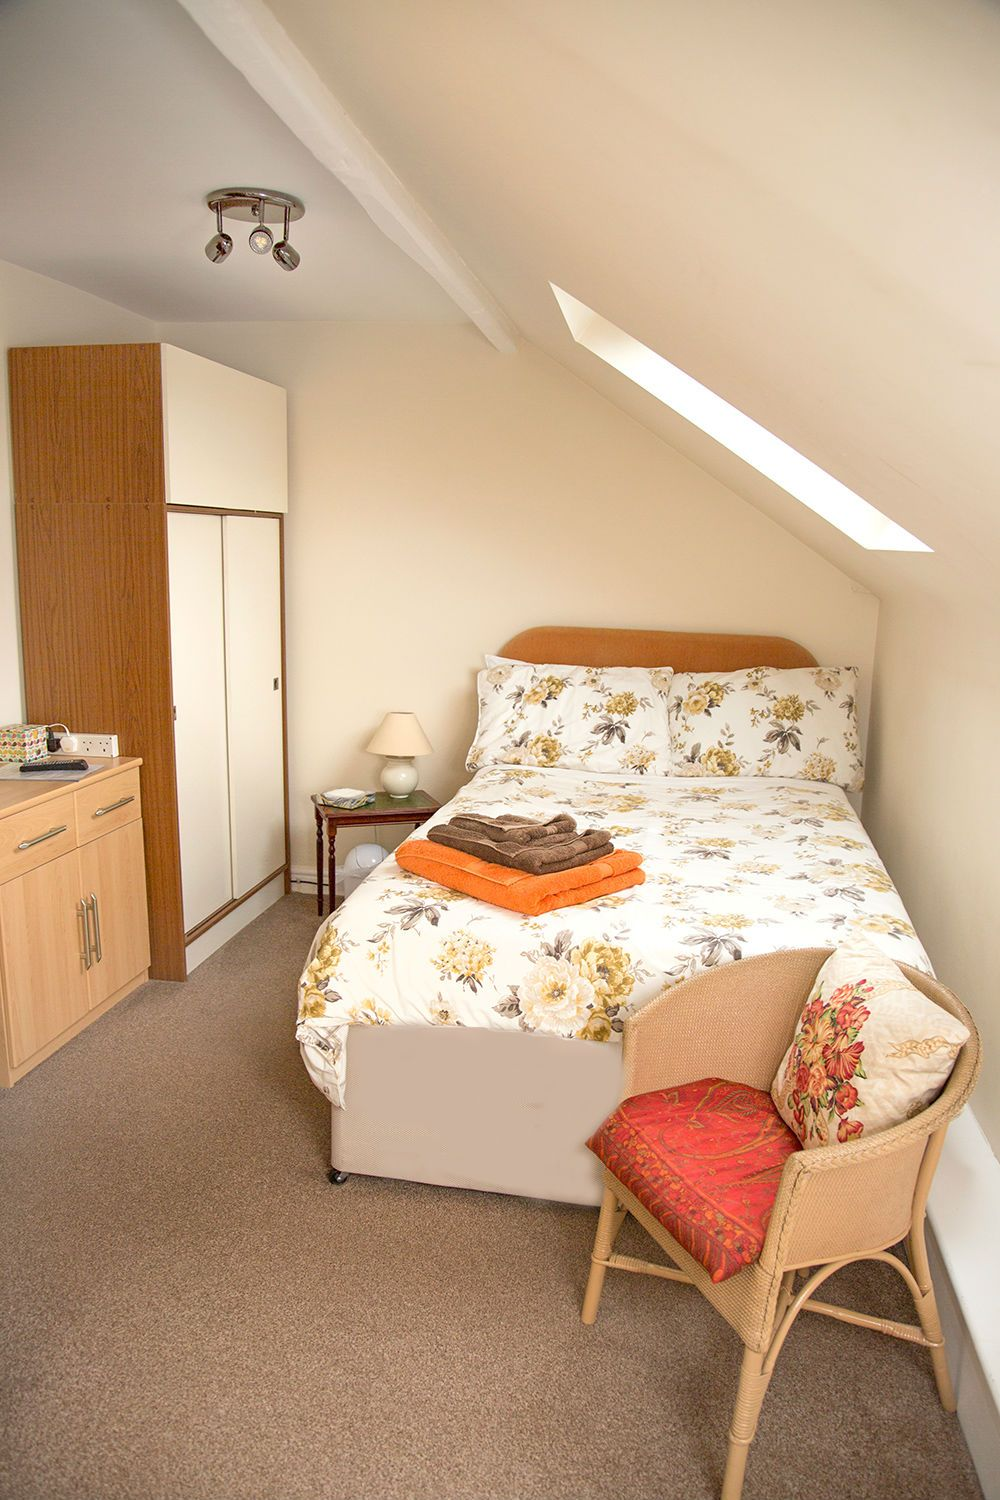 The Single Room at Old Hathern Station B&B